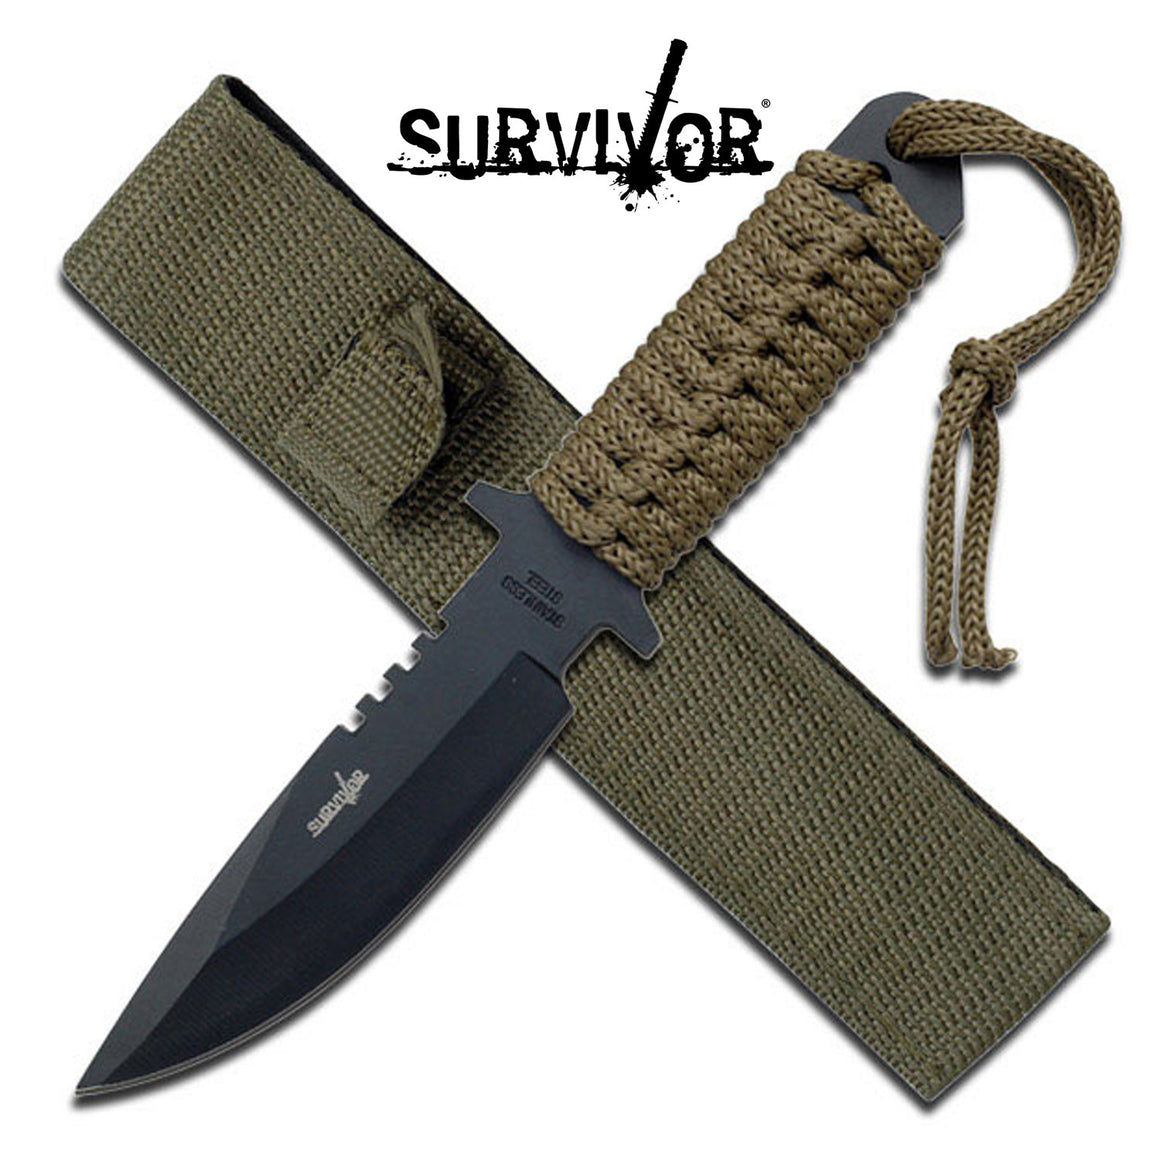 Survivor HK-7525 Fixed Blade Knife